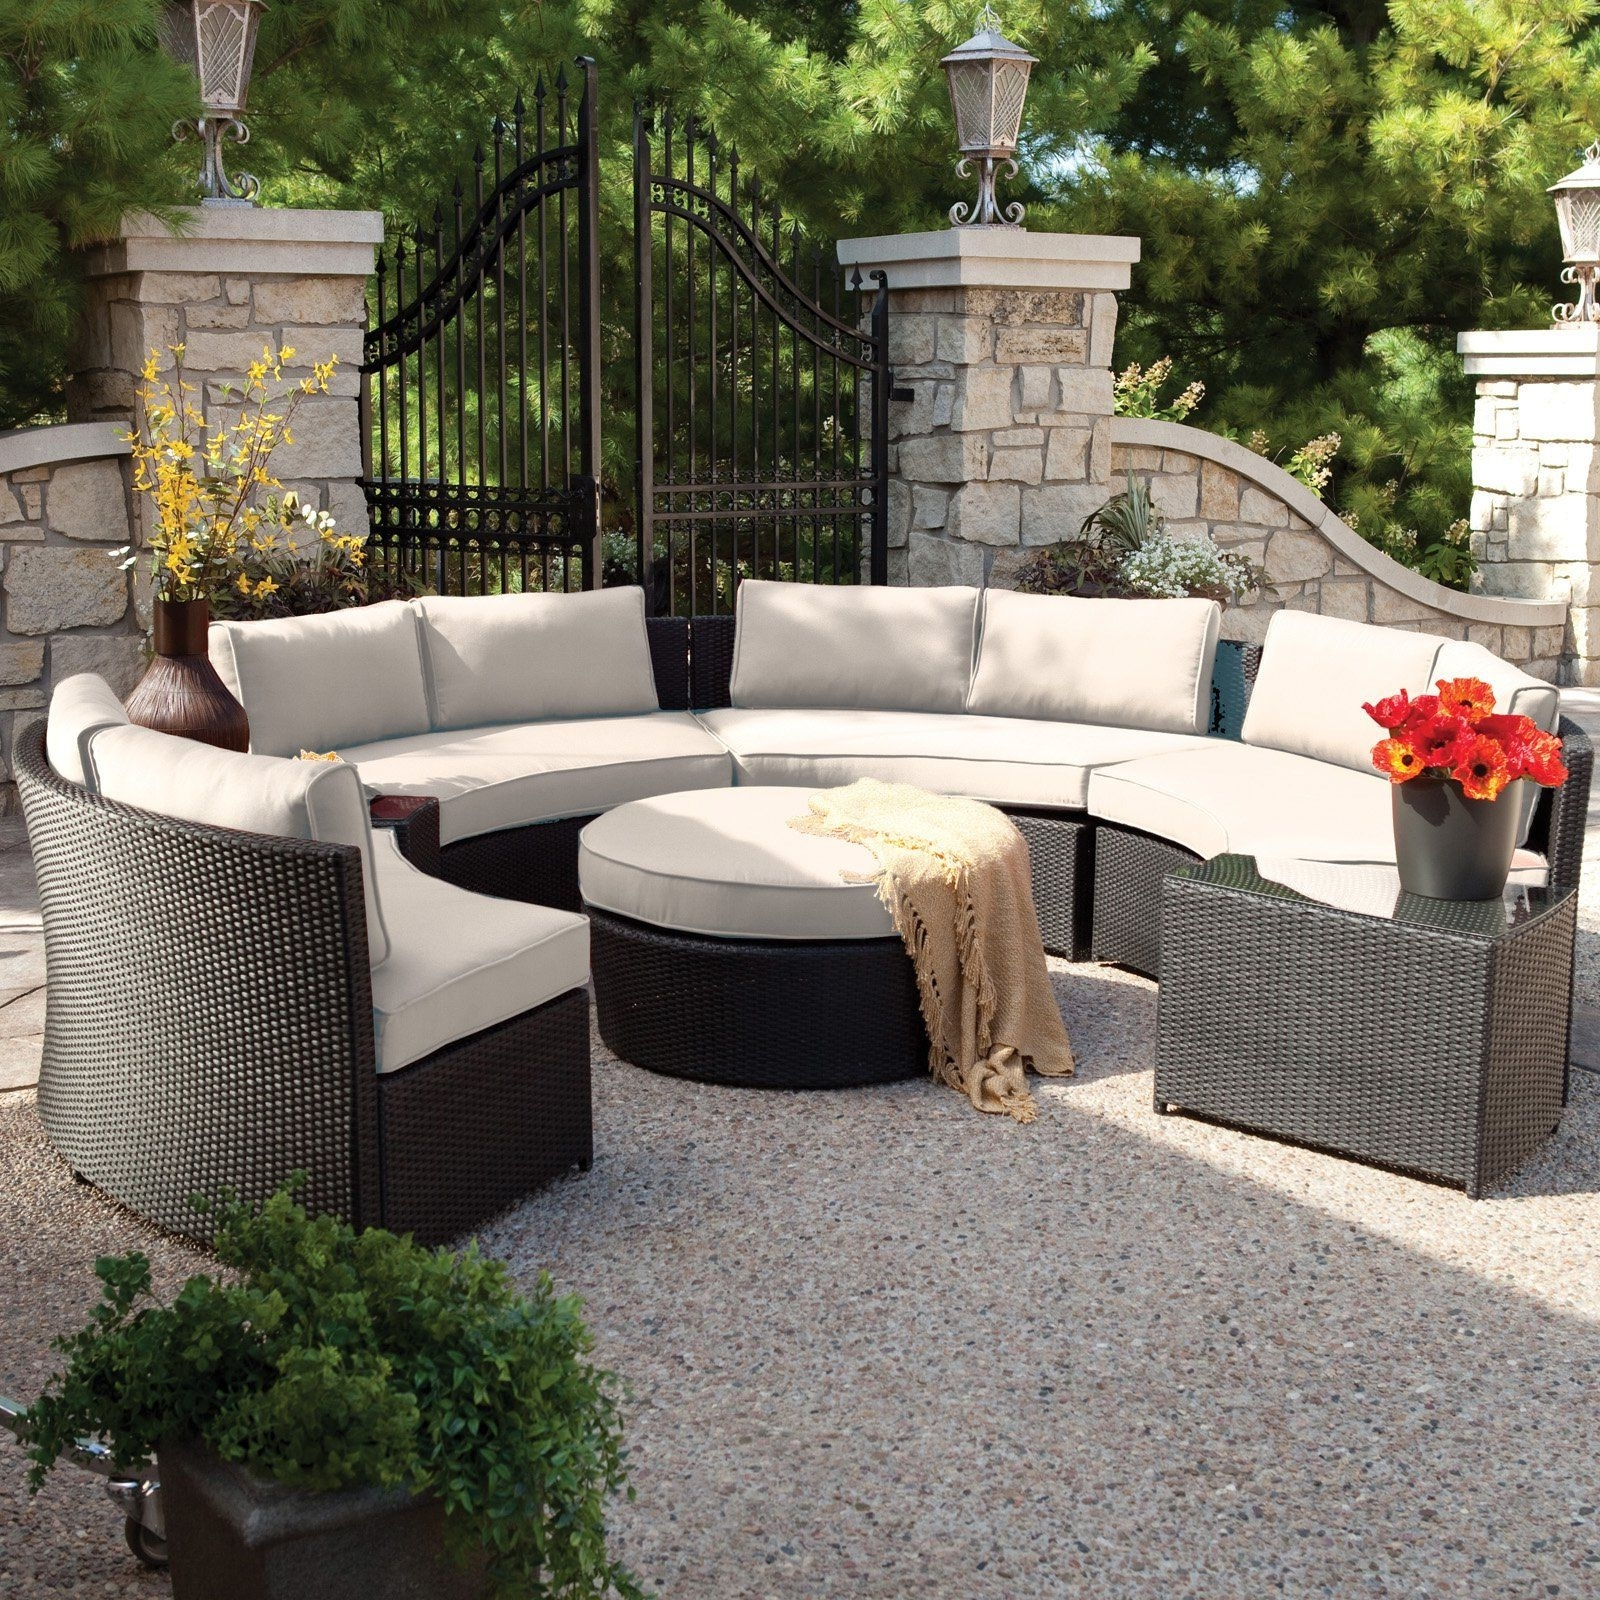 Resin Wicker Patio Conversation Sets Throughout Favorite Belham Living Meridian Round Outdoor Wicker Patio Furniture Set With (View 14 of 20)